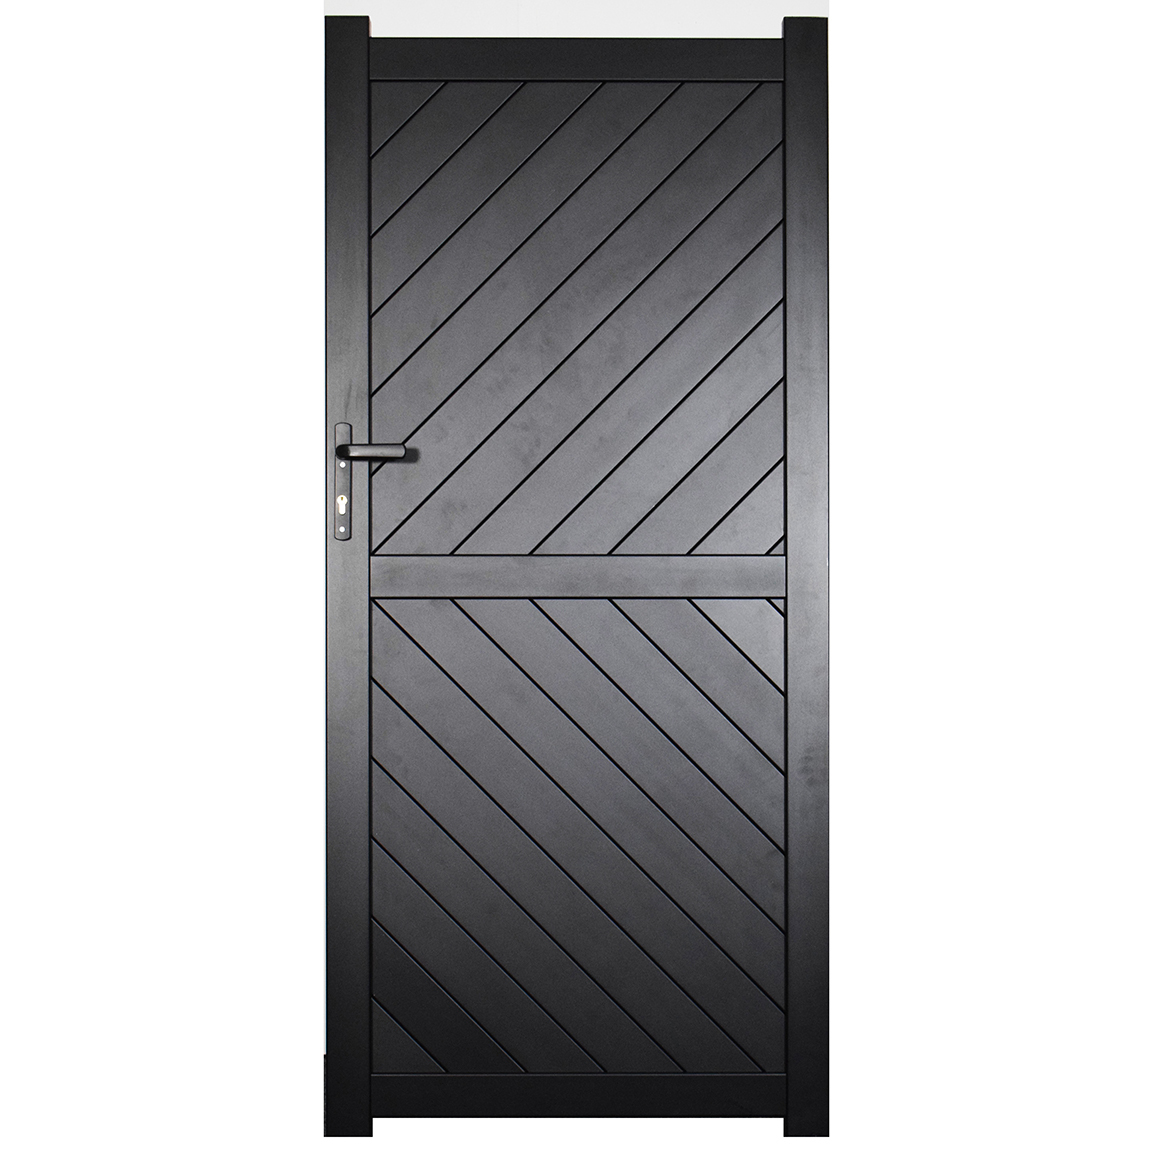 Side Gate & Pedestrian gate in Aluminium with diagonal solid infill & Flat top. - Maintenance free - Choice of colours and dimension image